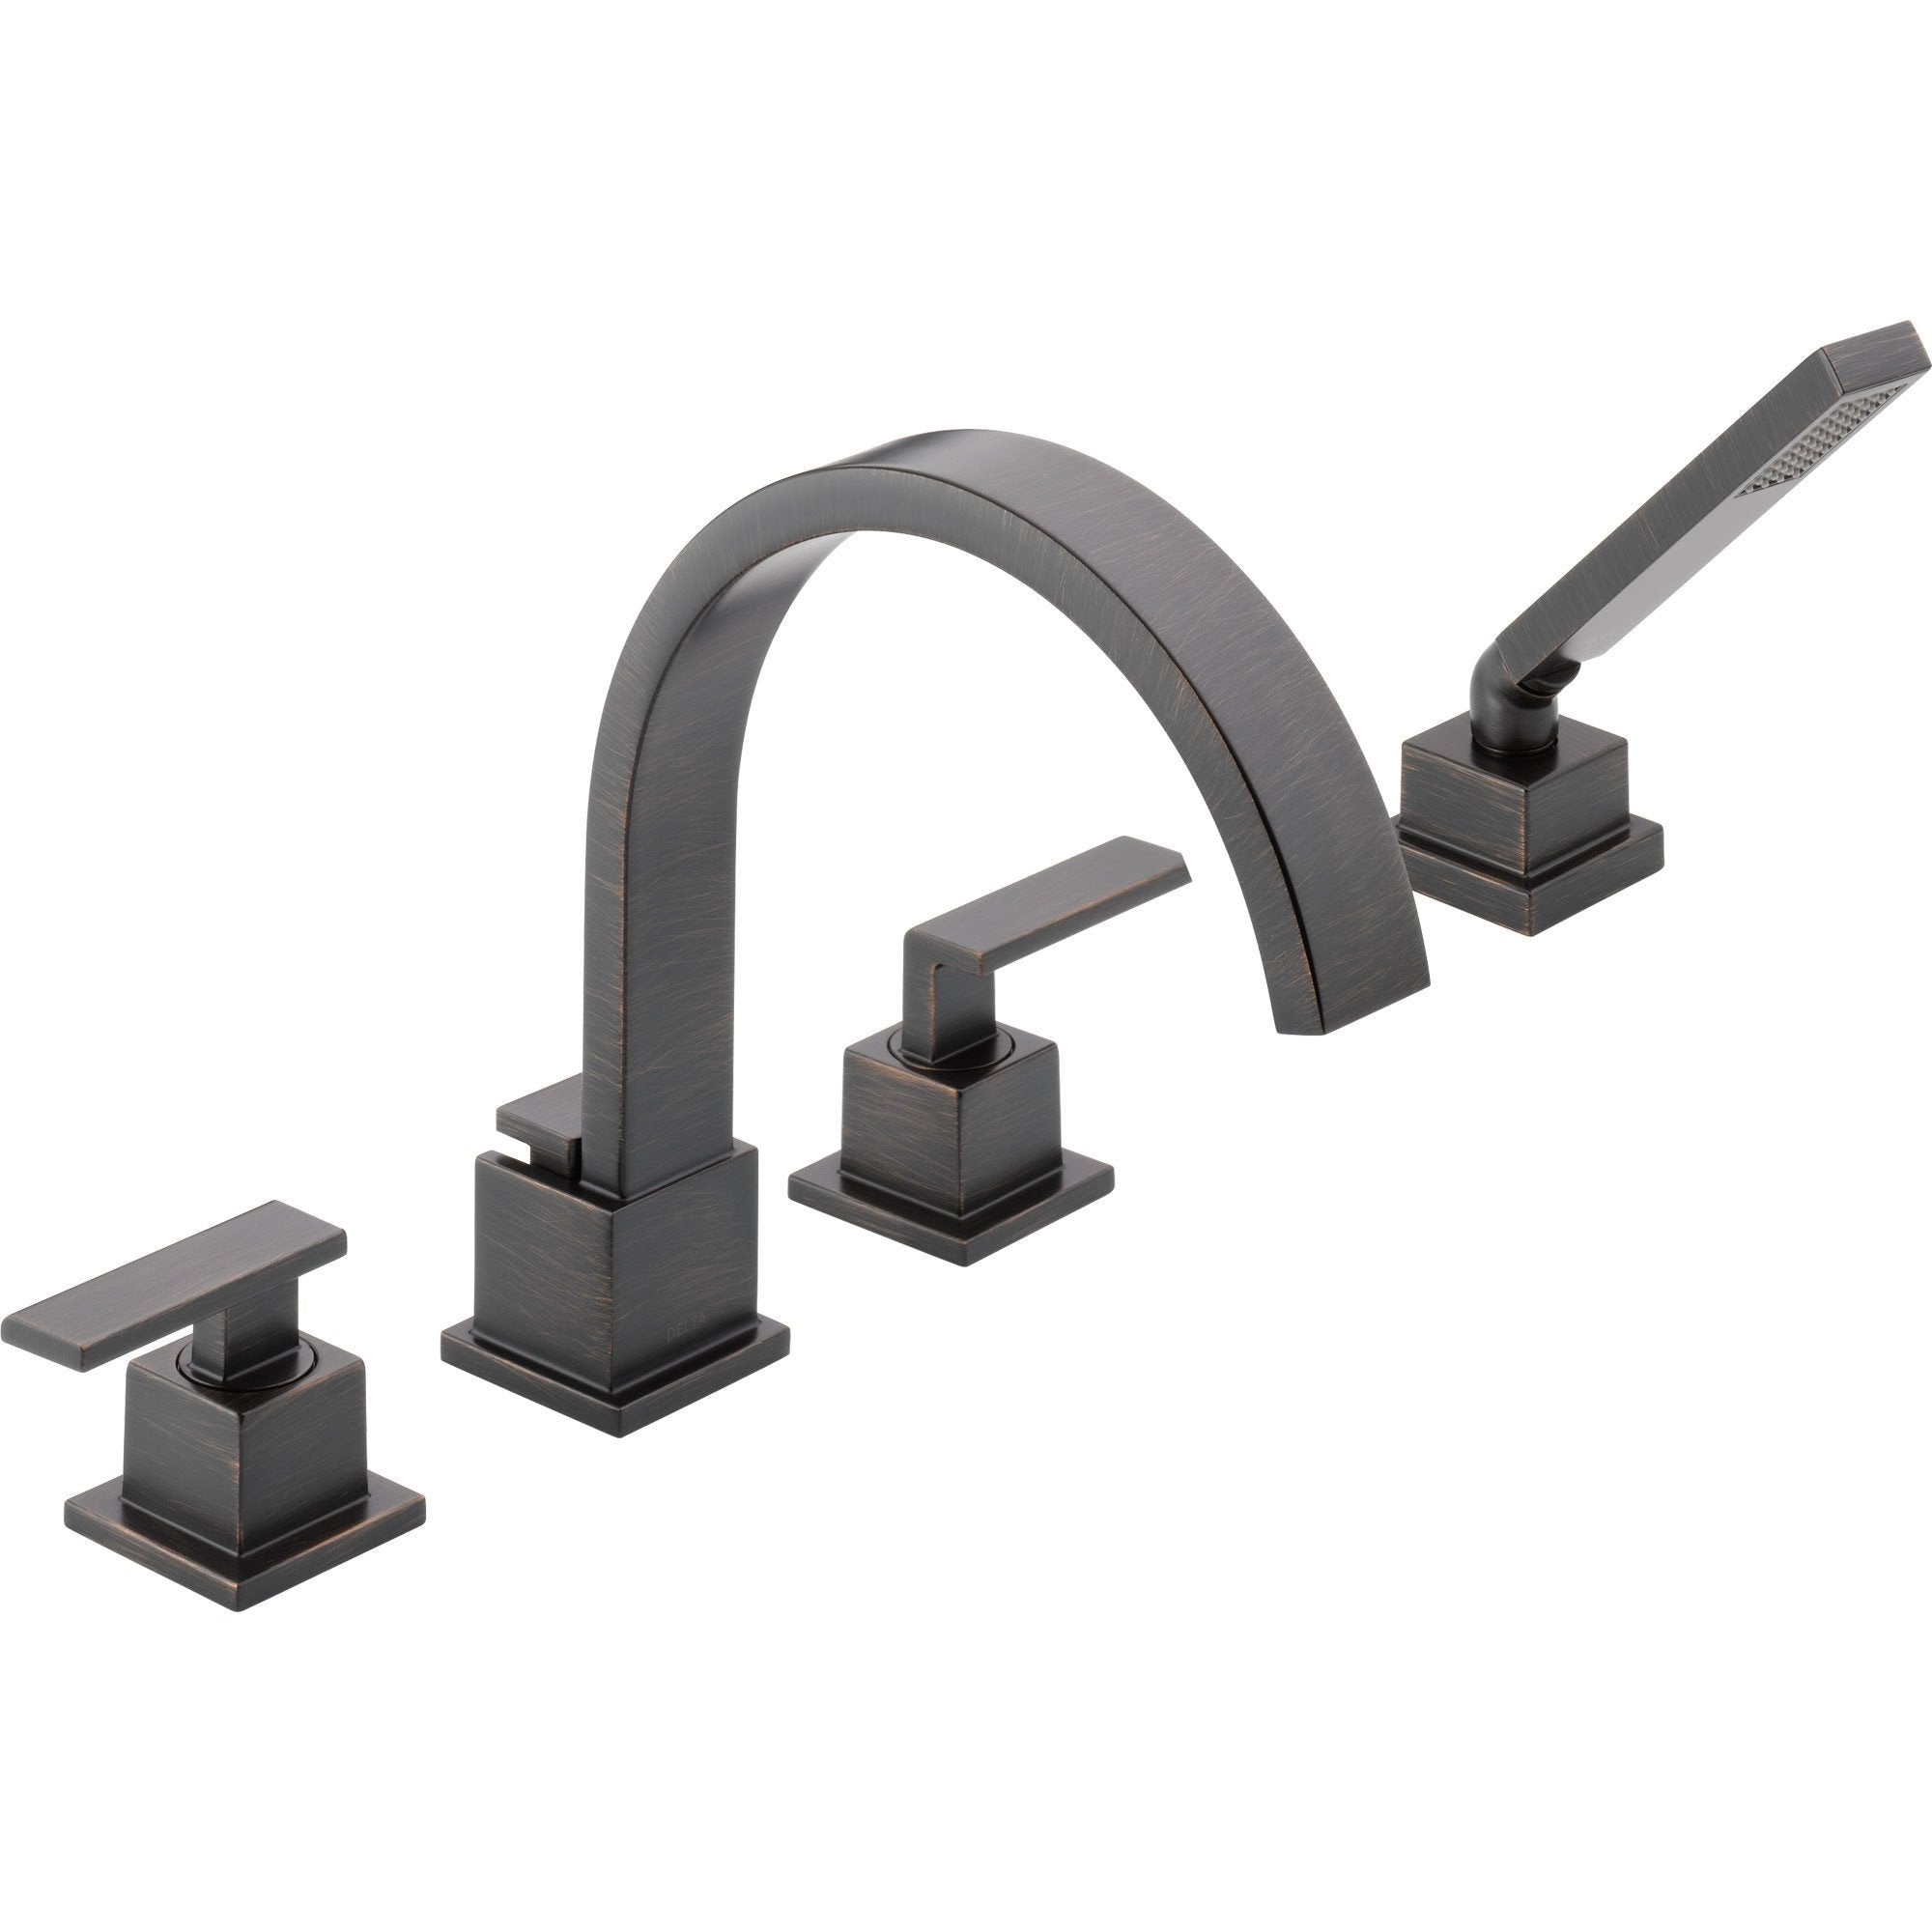 Delta Vero Venetian Bronze Roman Tub Faucet with Valve and Handshower D869V